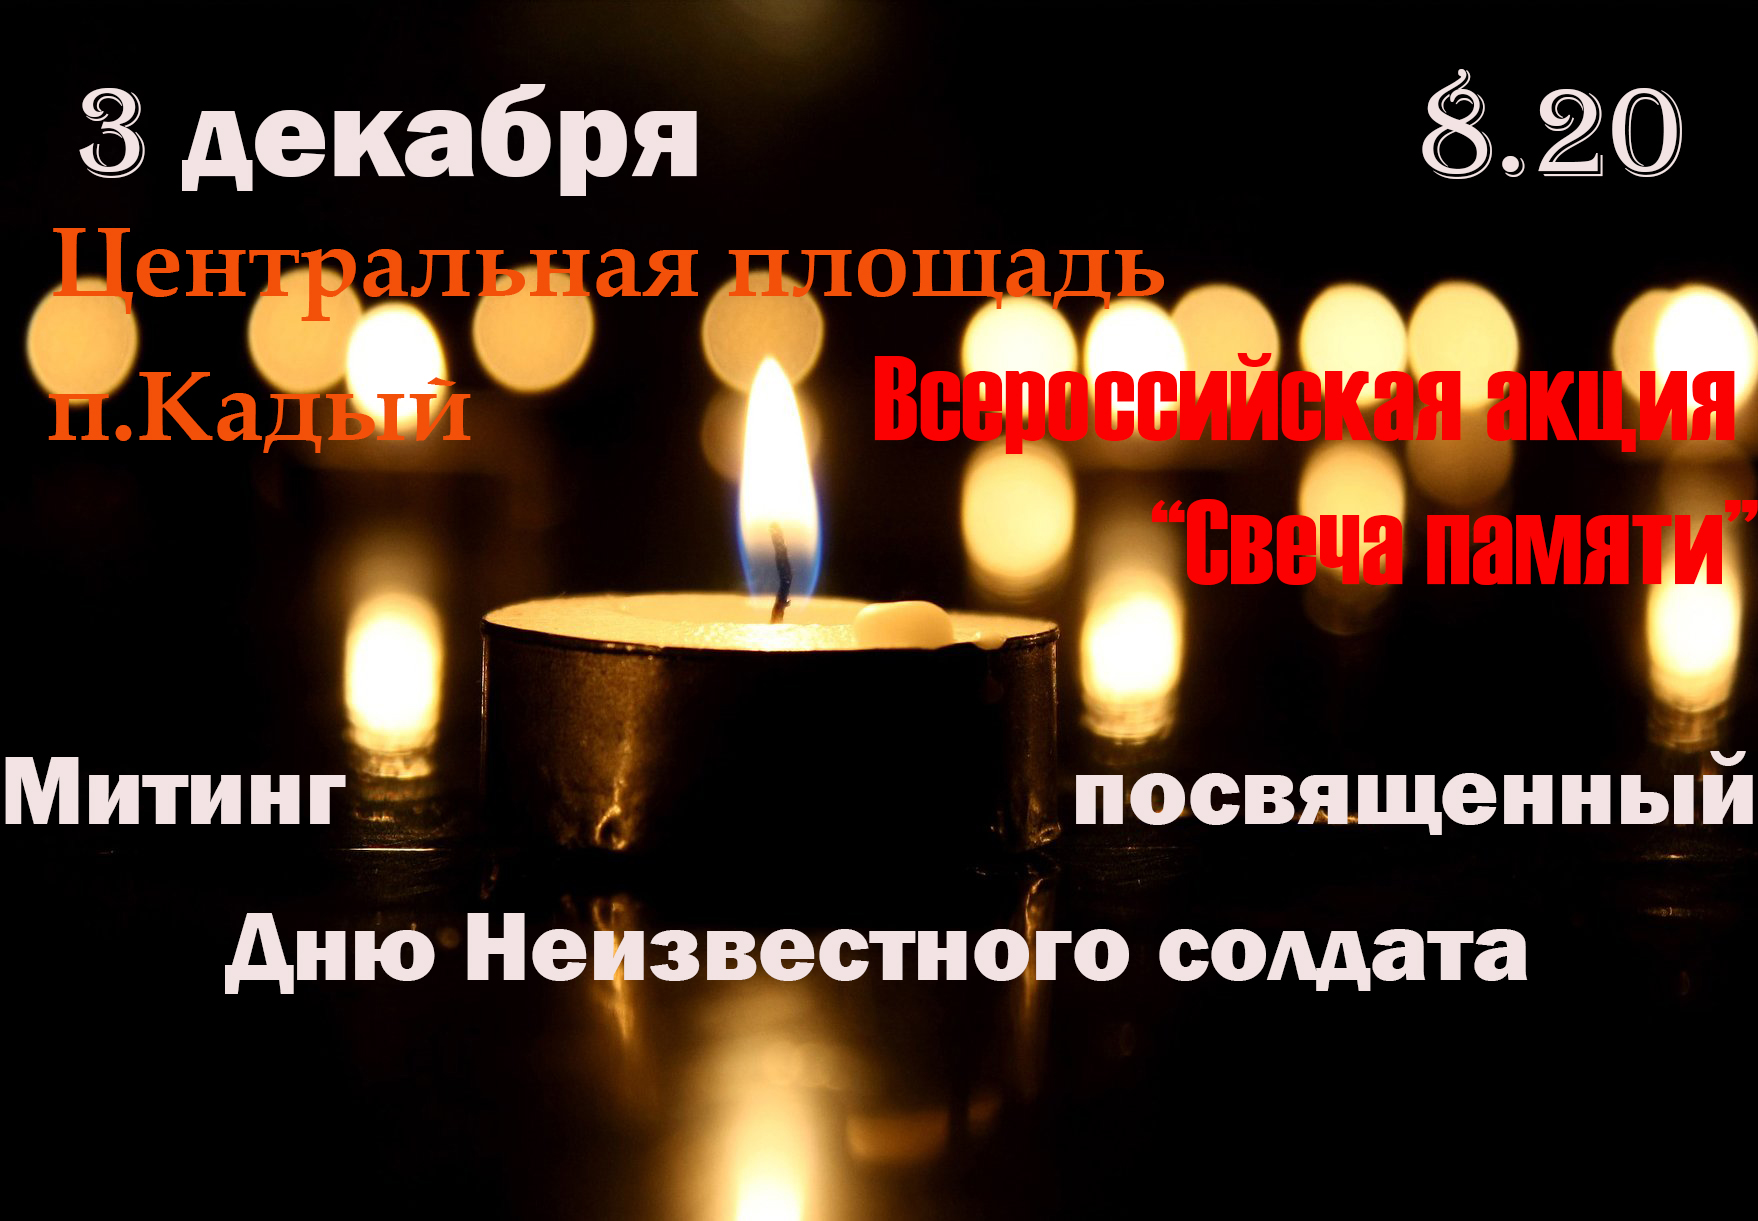 candle 794312 1920щж 1